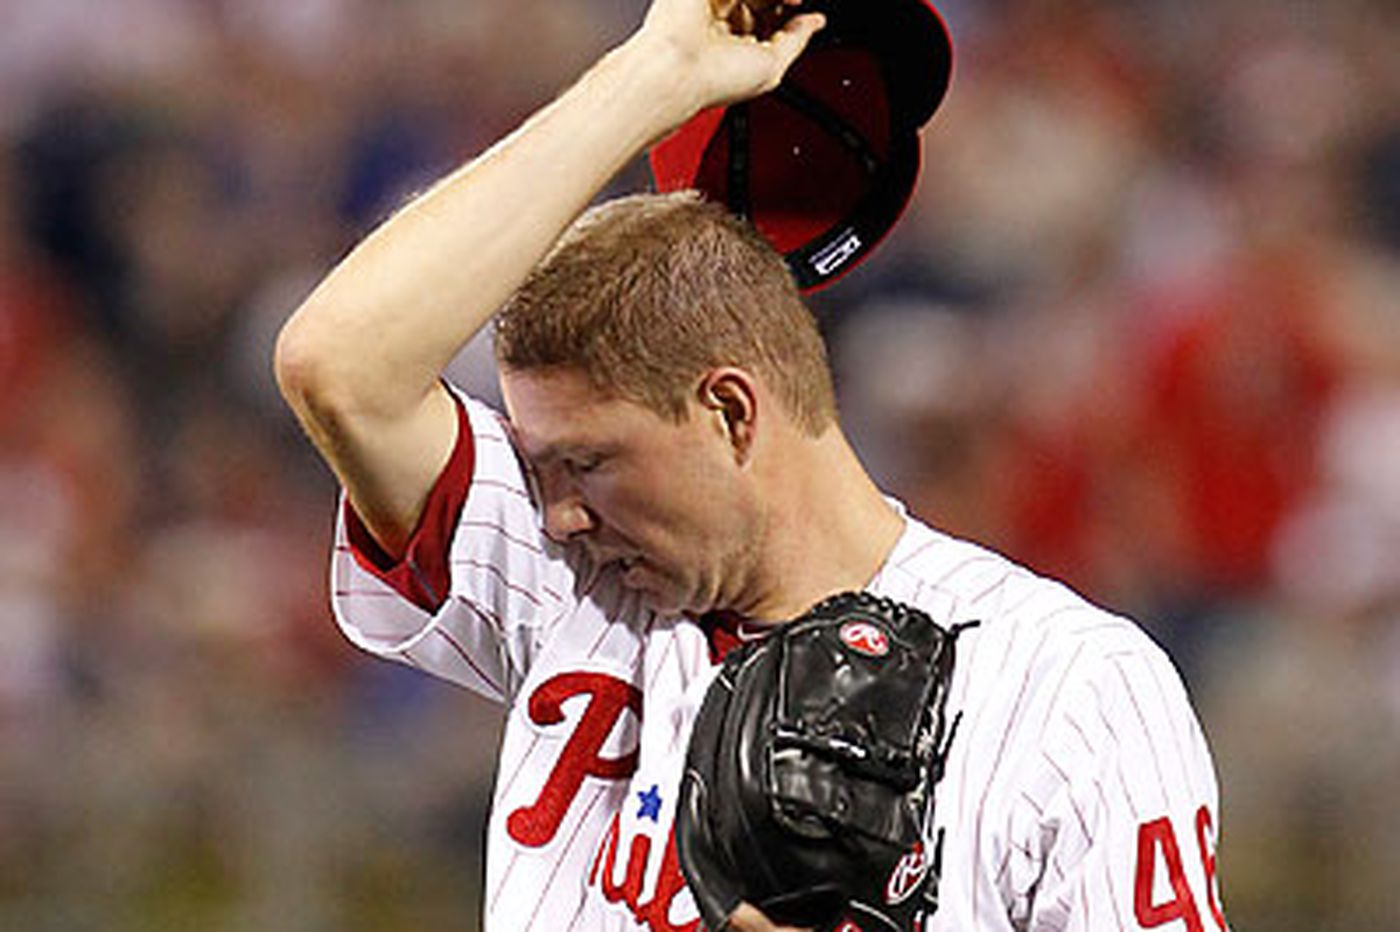 Phils fall as Madson loses it in 9th